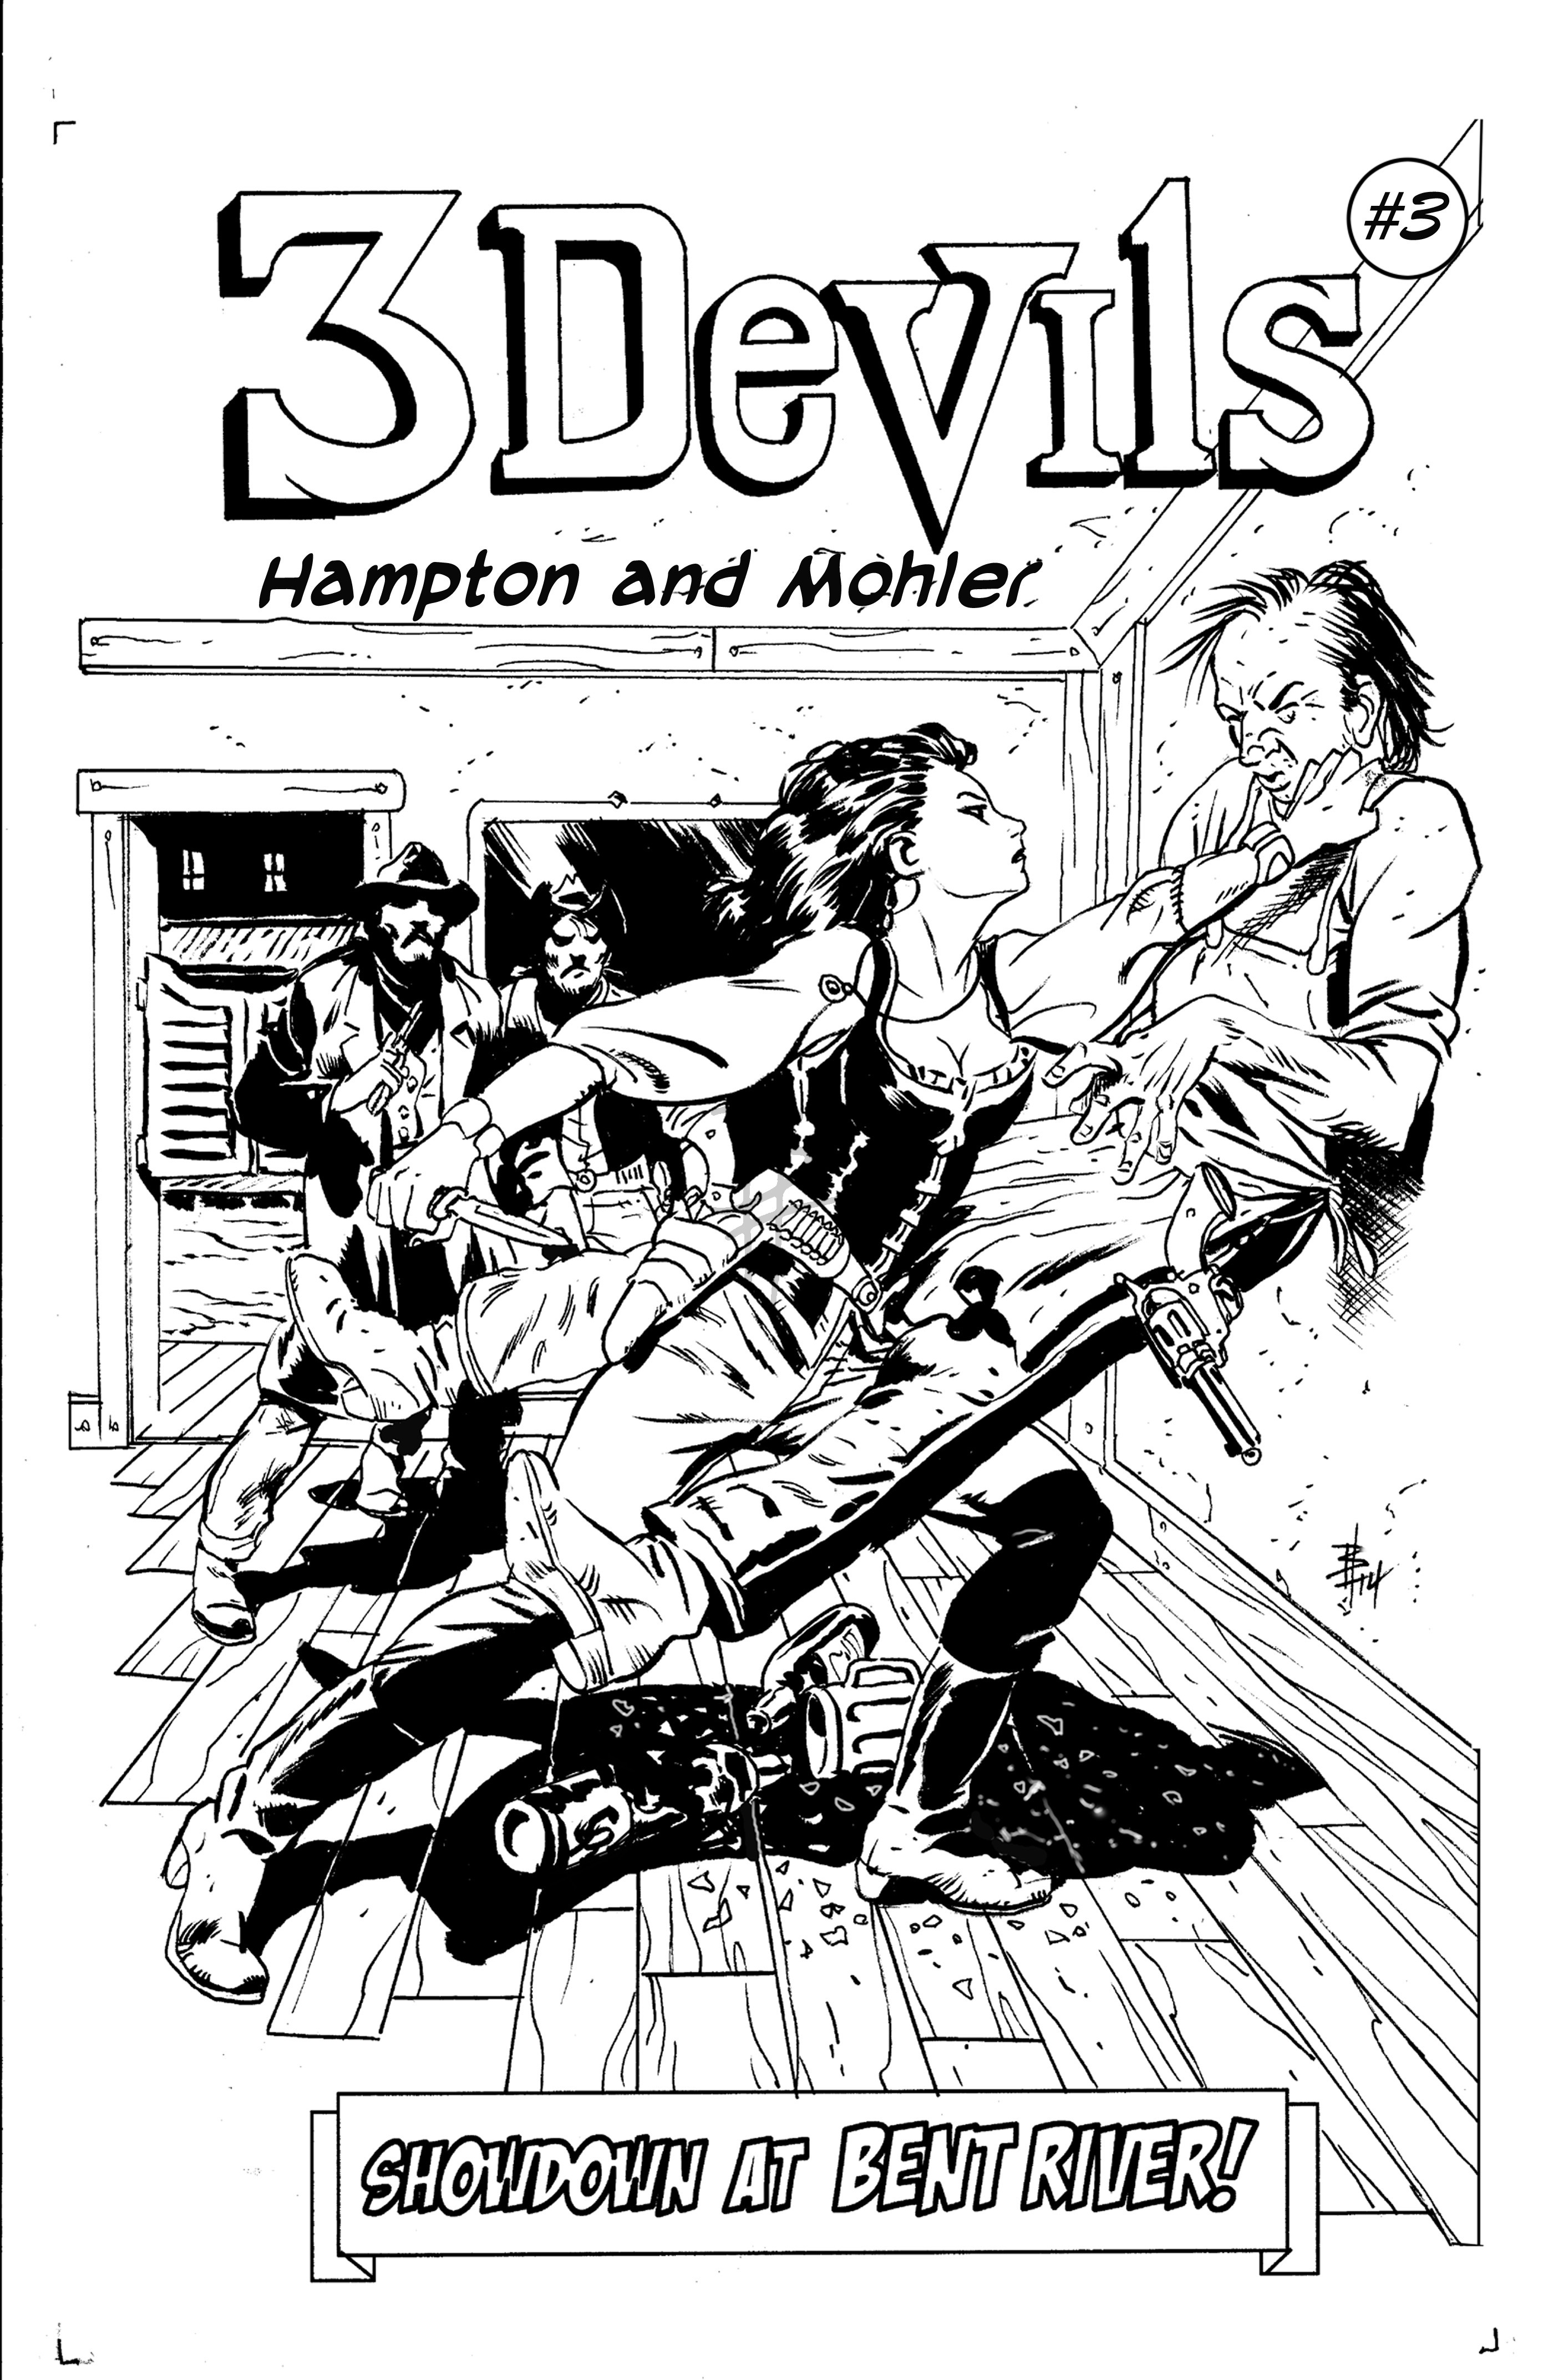 Bo Hampton – Storyboard and Comic Book Artist | The Official Website